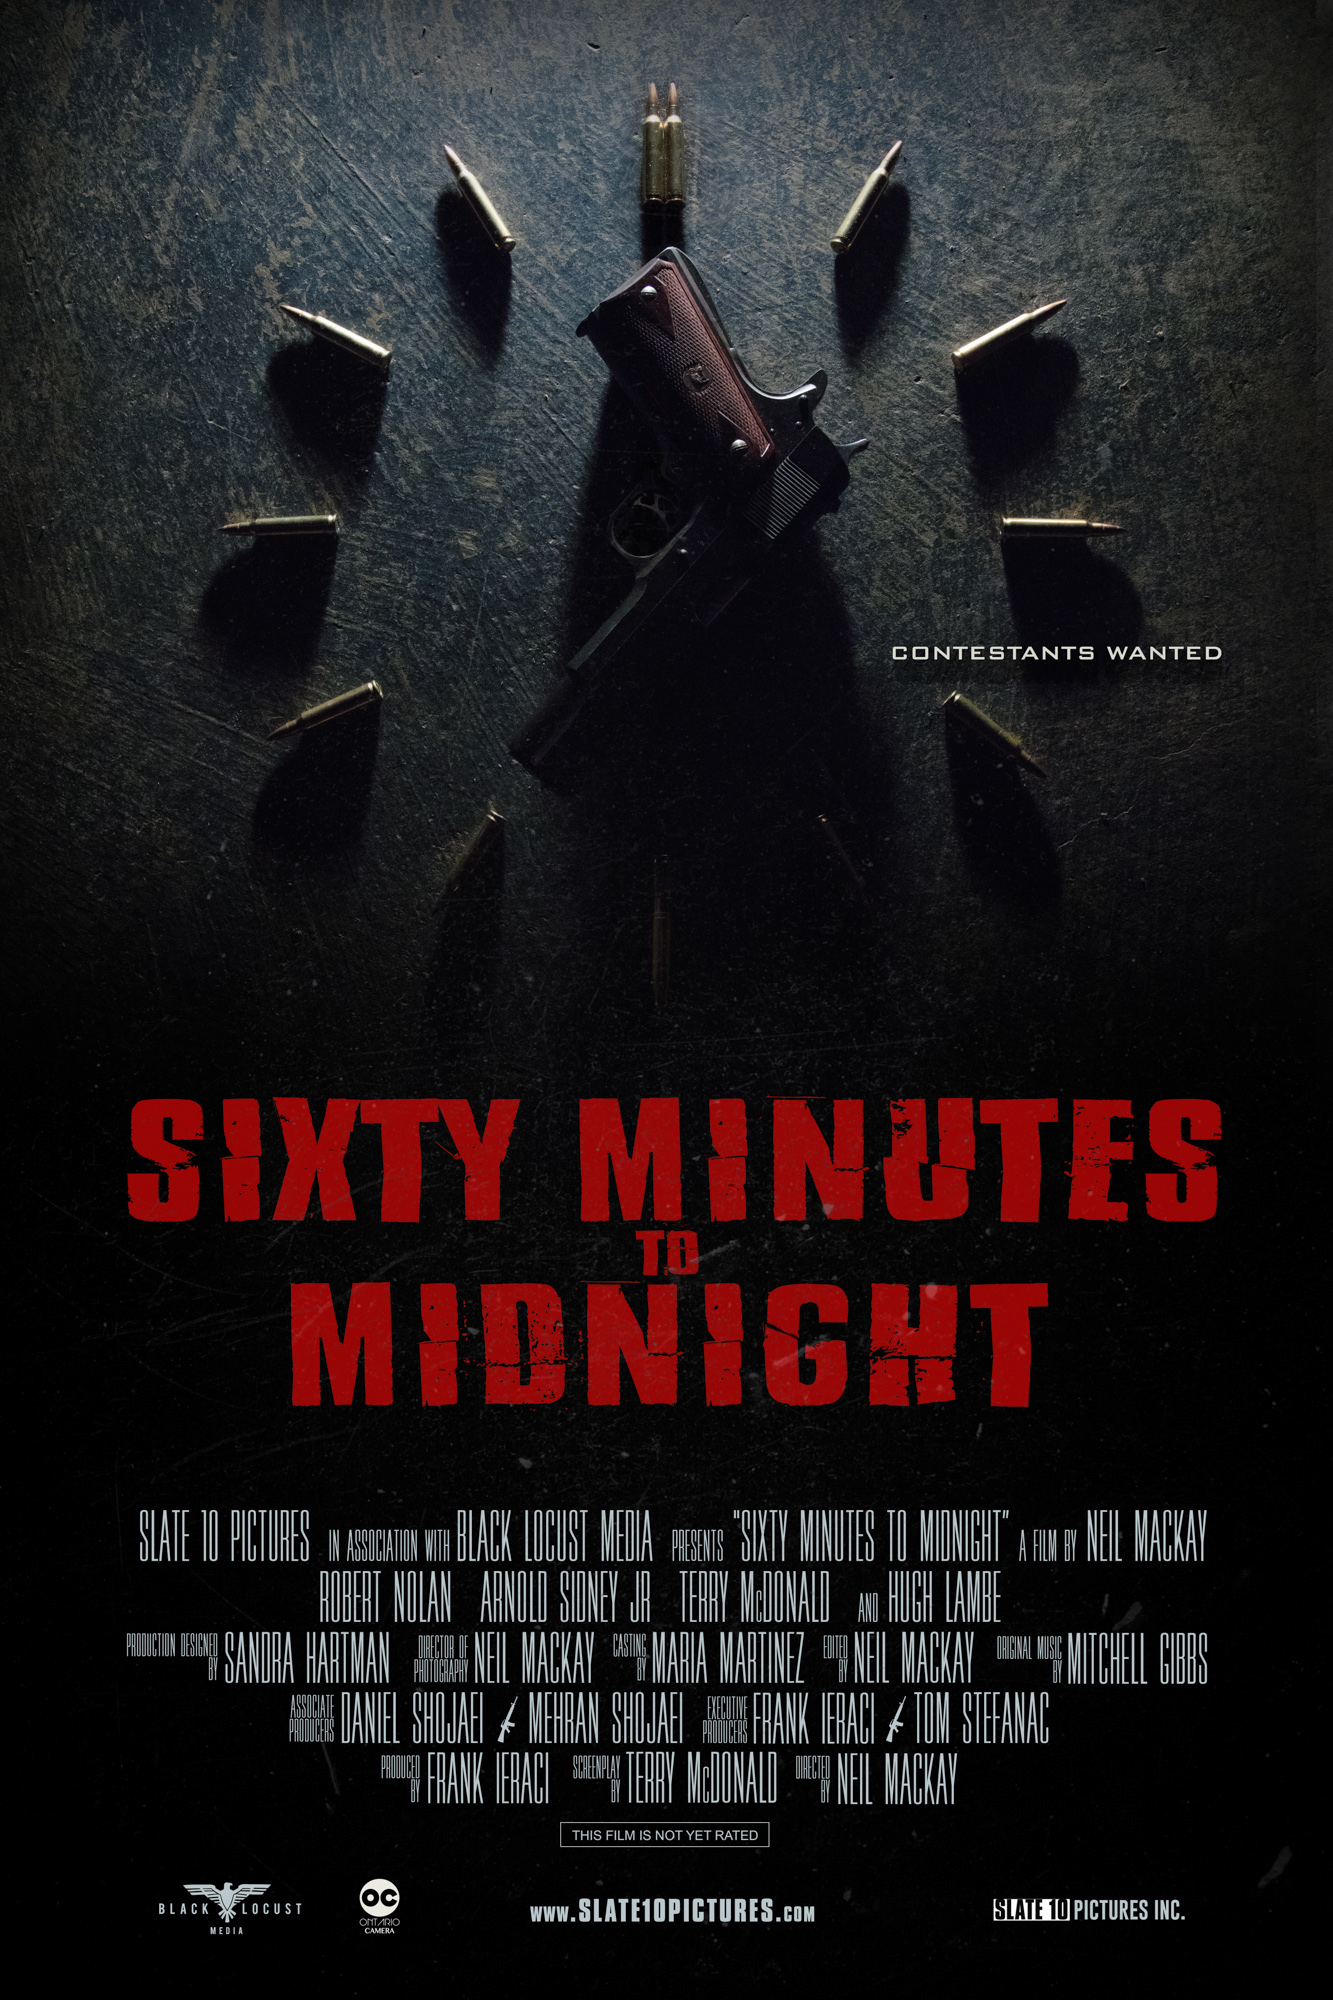 Sixty Minutes to Midnight - Poster.jpg